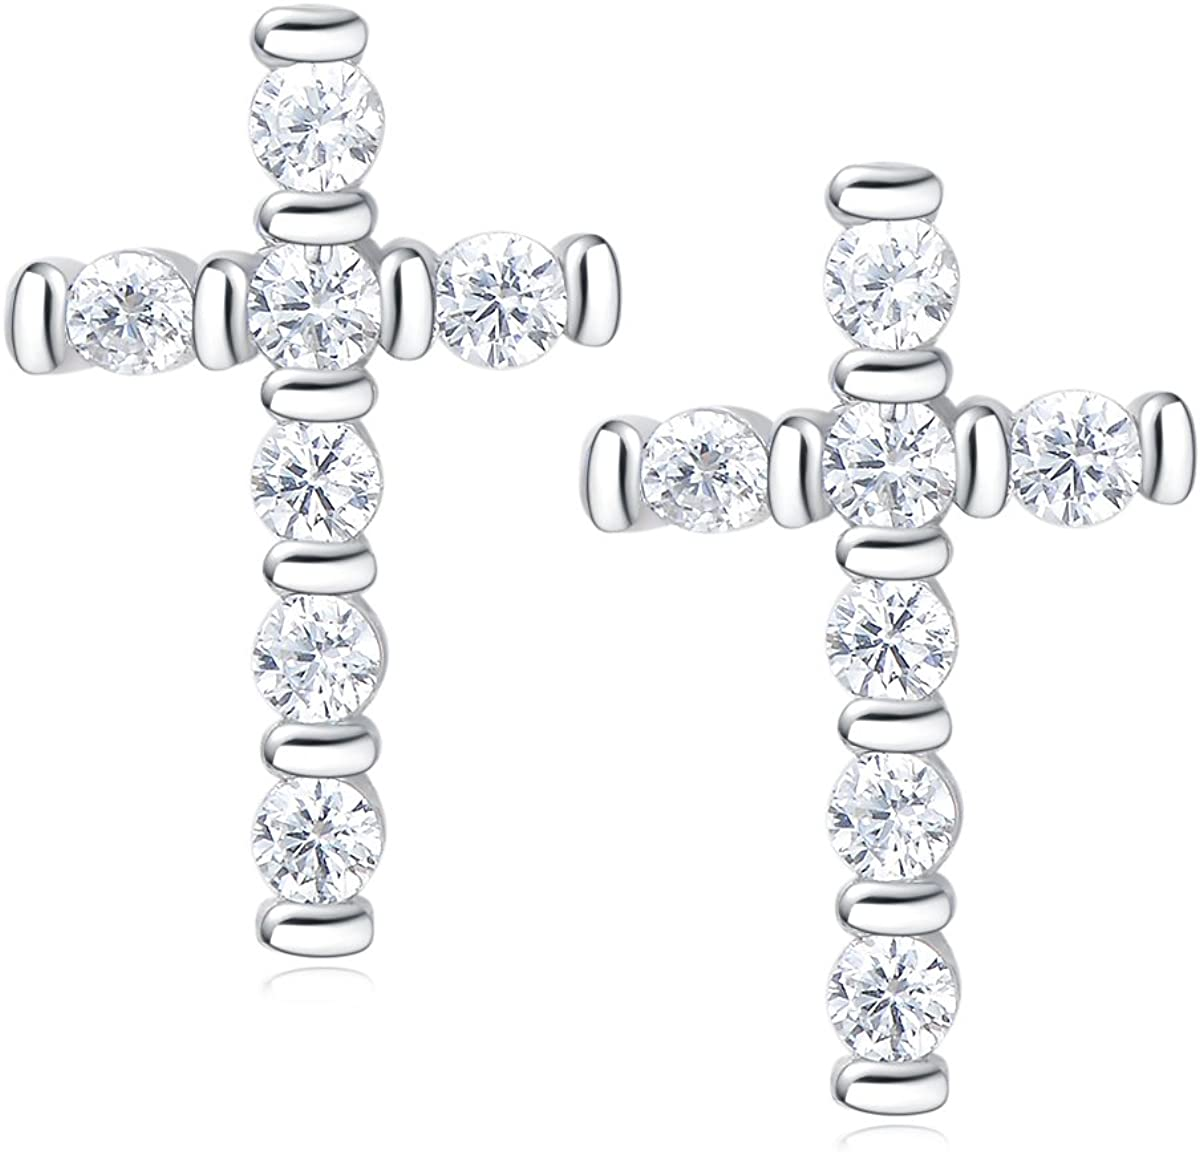 Carleen 14k Gold Plated Sterling Silver Clear CZ Cubic Zirconia Cute Dainty Petite Small Tiny Cross Stud Earrings For Women Girls Teens, Size 6mm X 10mm